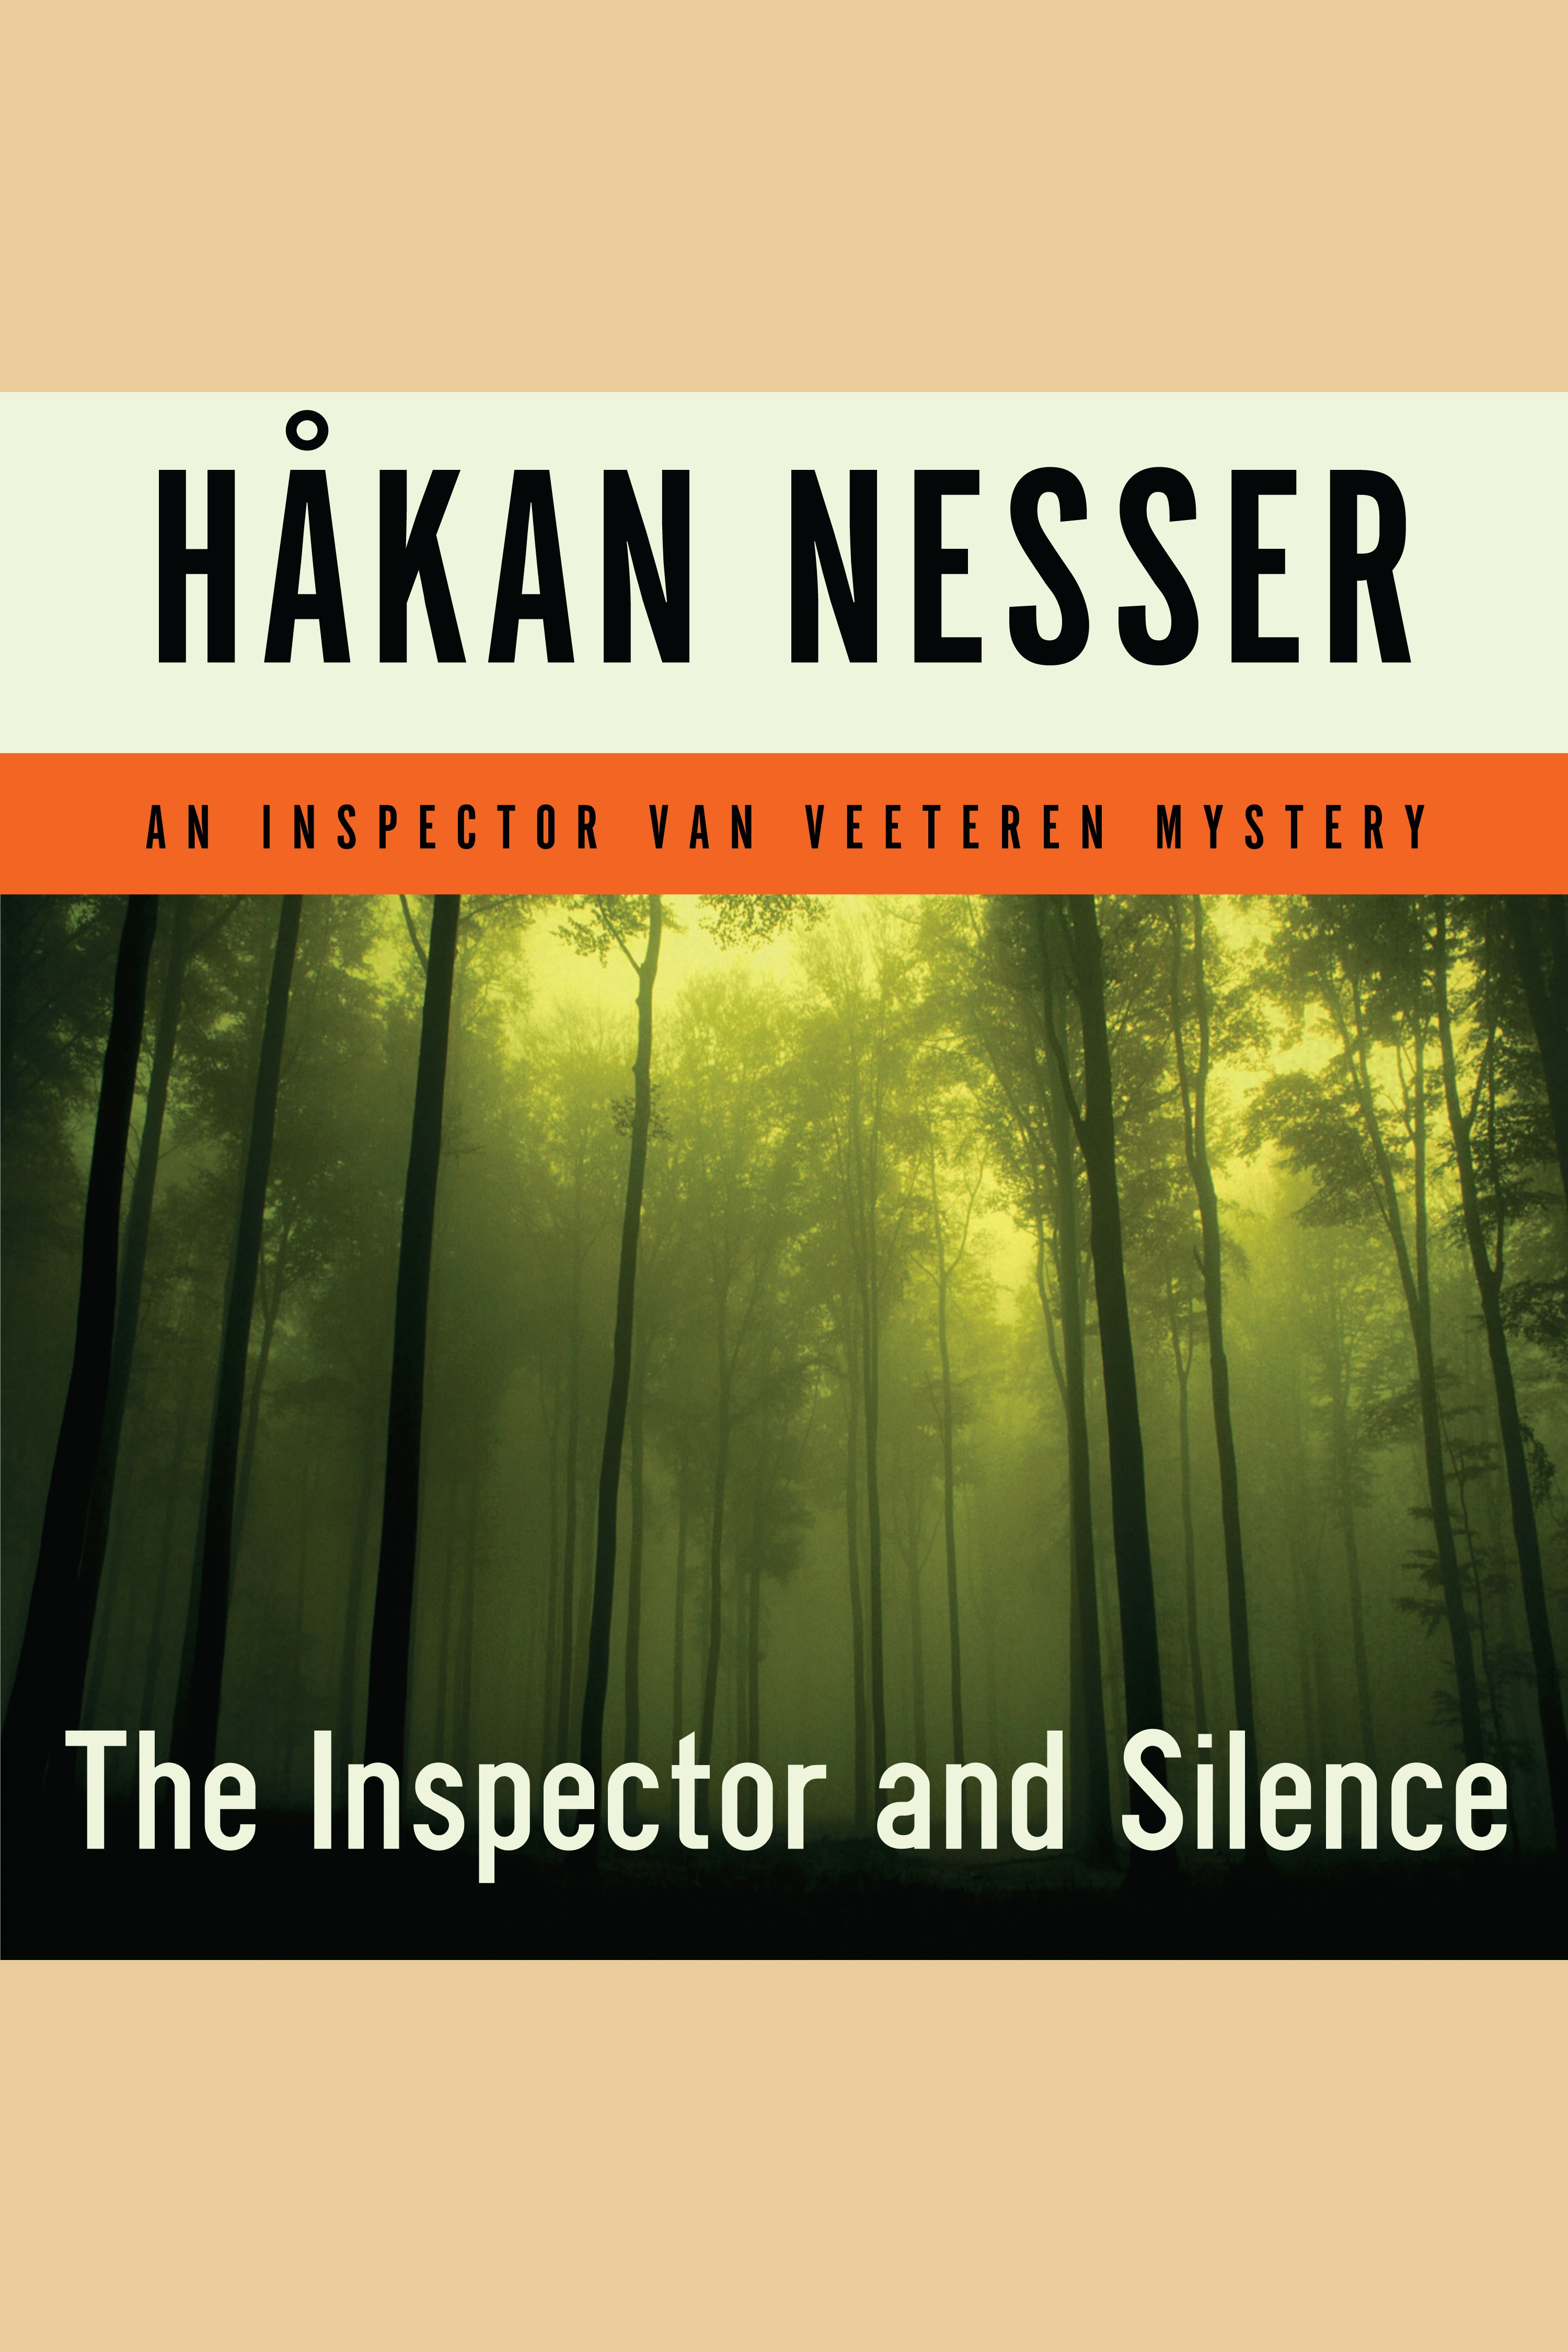 The inspector and silence an Inspector Van Veeteren mystery cover image